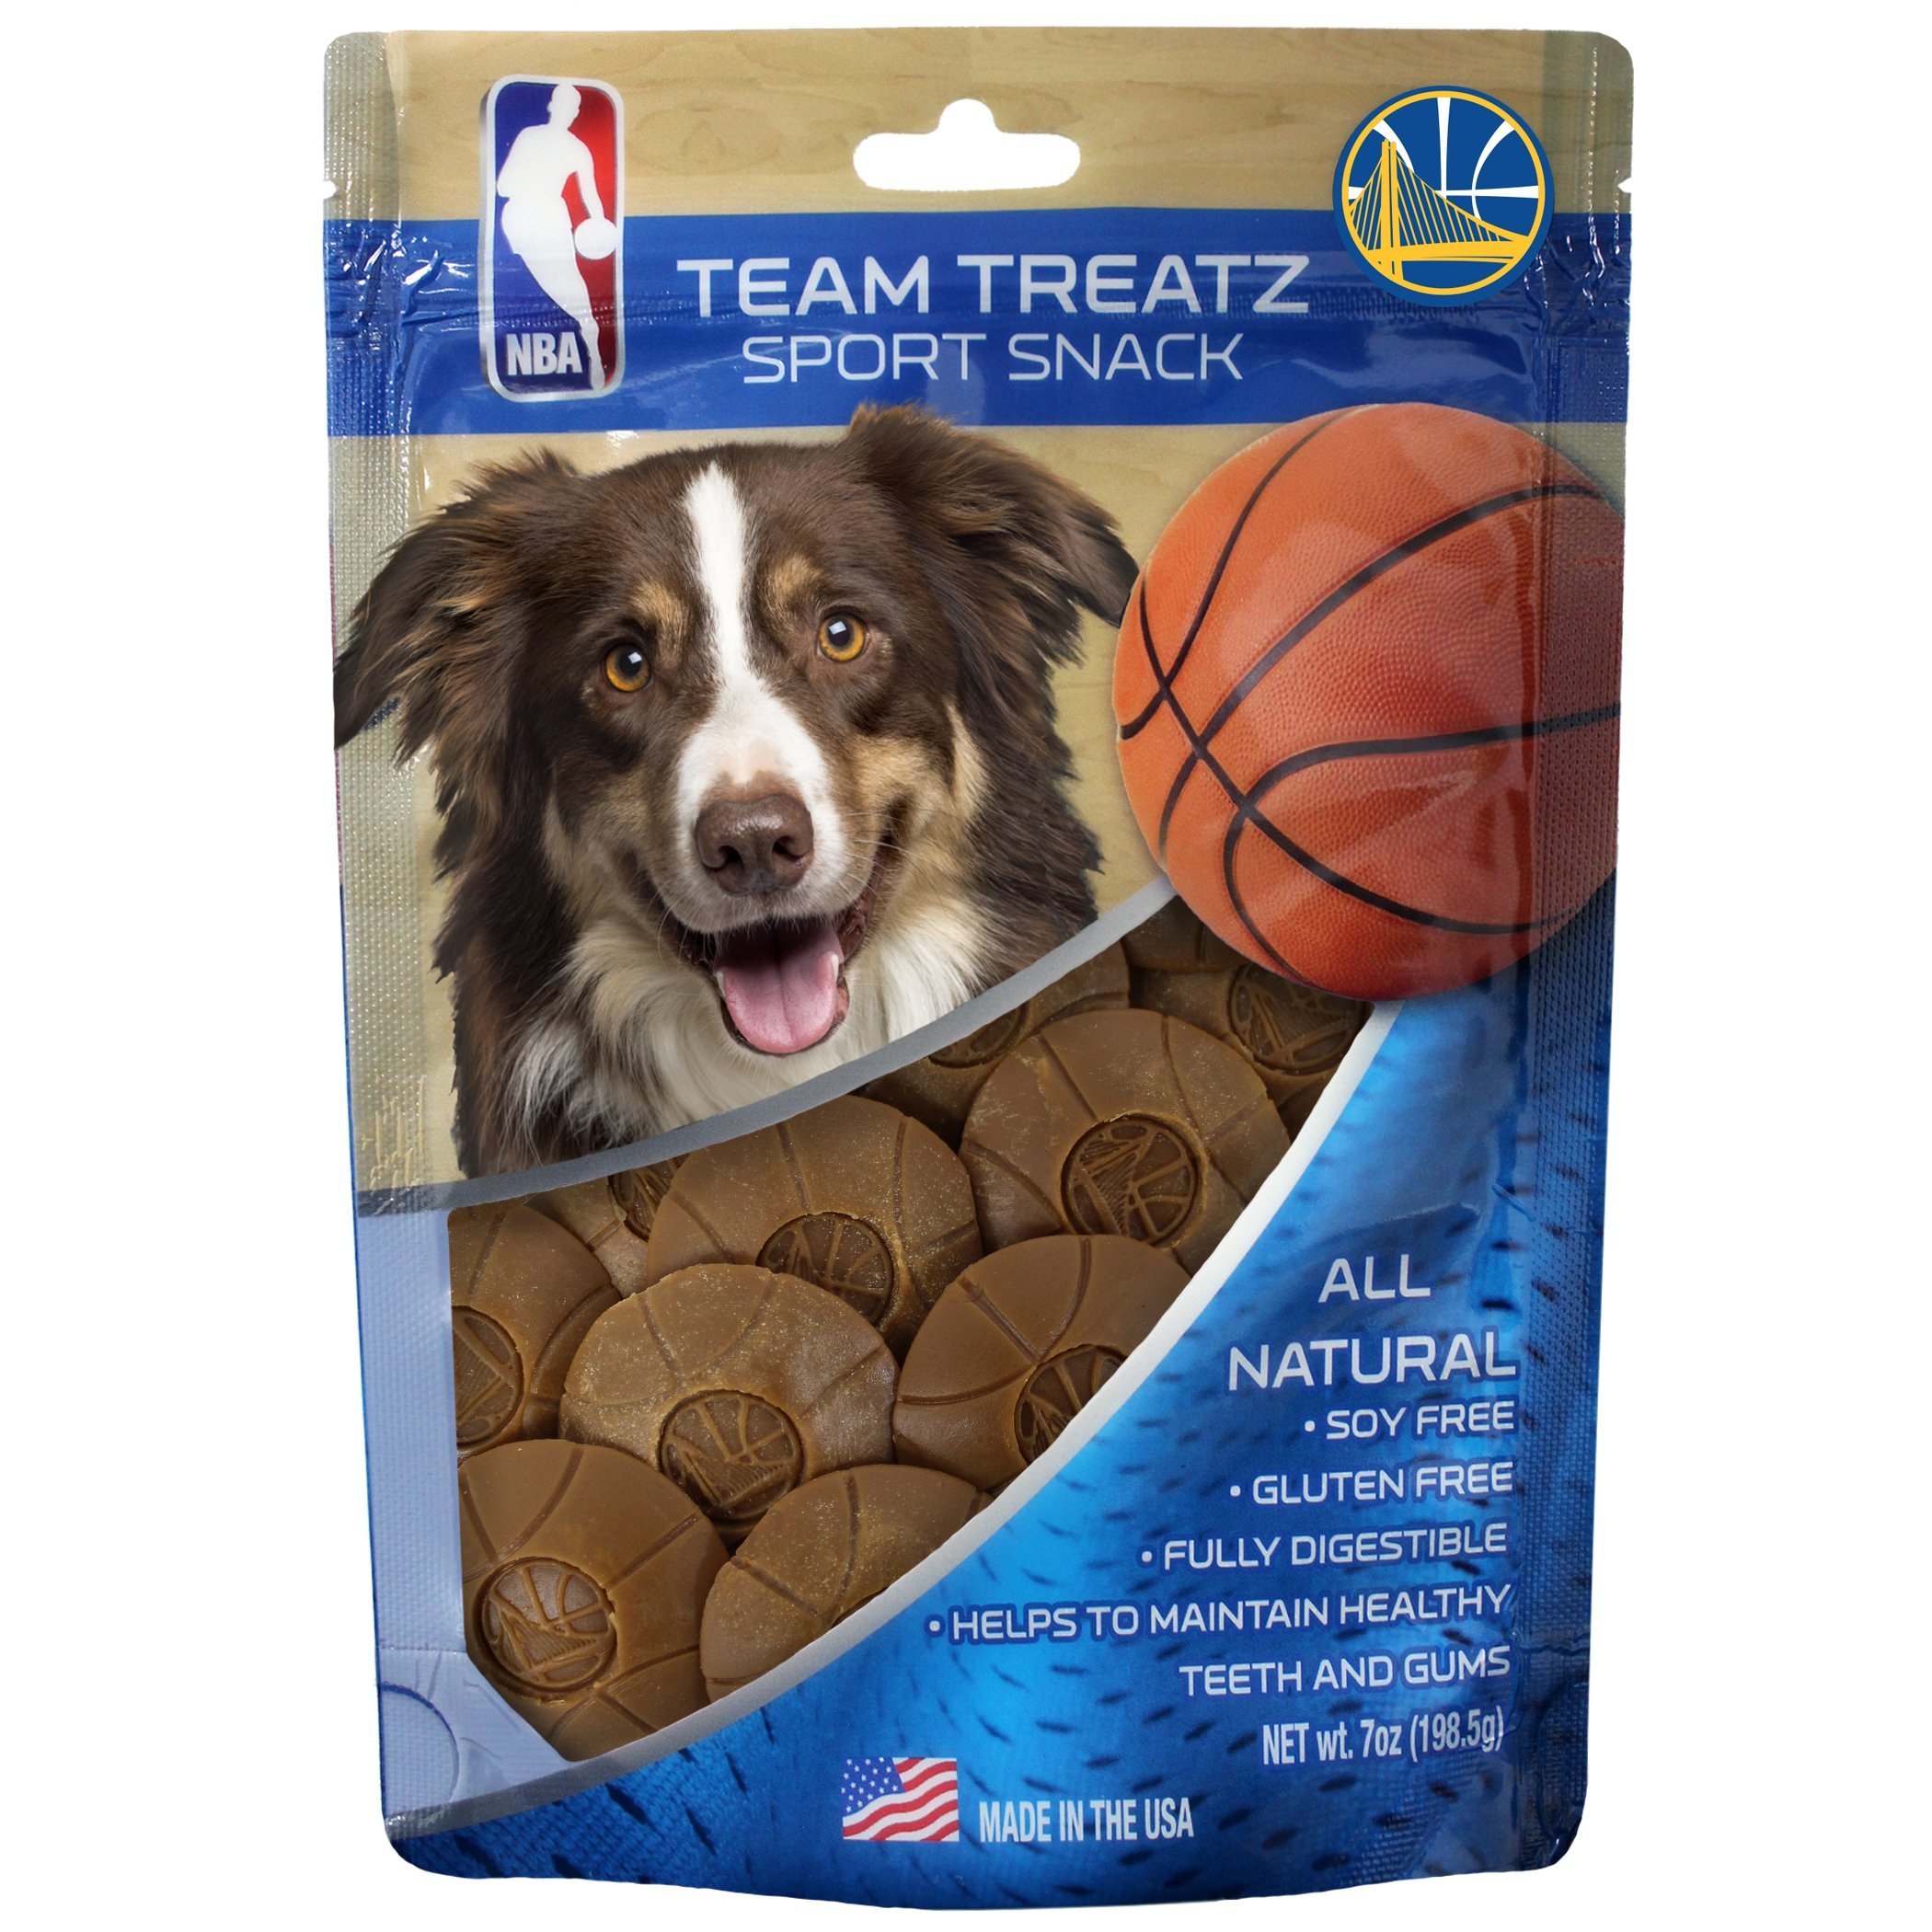 NBA SAN ANTONIO SPURS DOG TREATS. Delicious Basketball Shaped Cookies for Dogs & Cats. Best Dog Rewards. Natural & Healthy Dental Dog Snack.